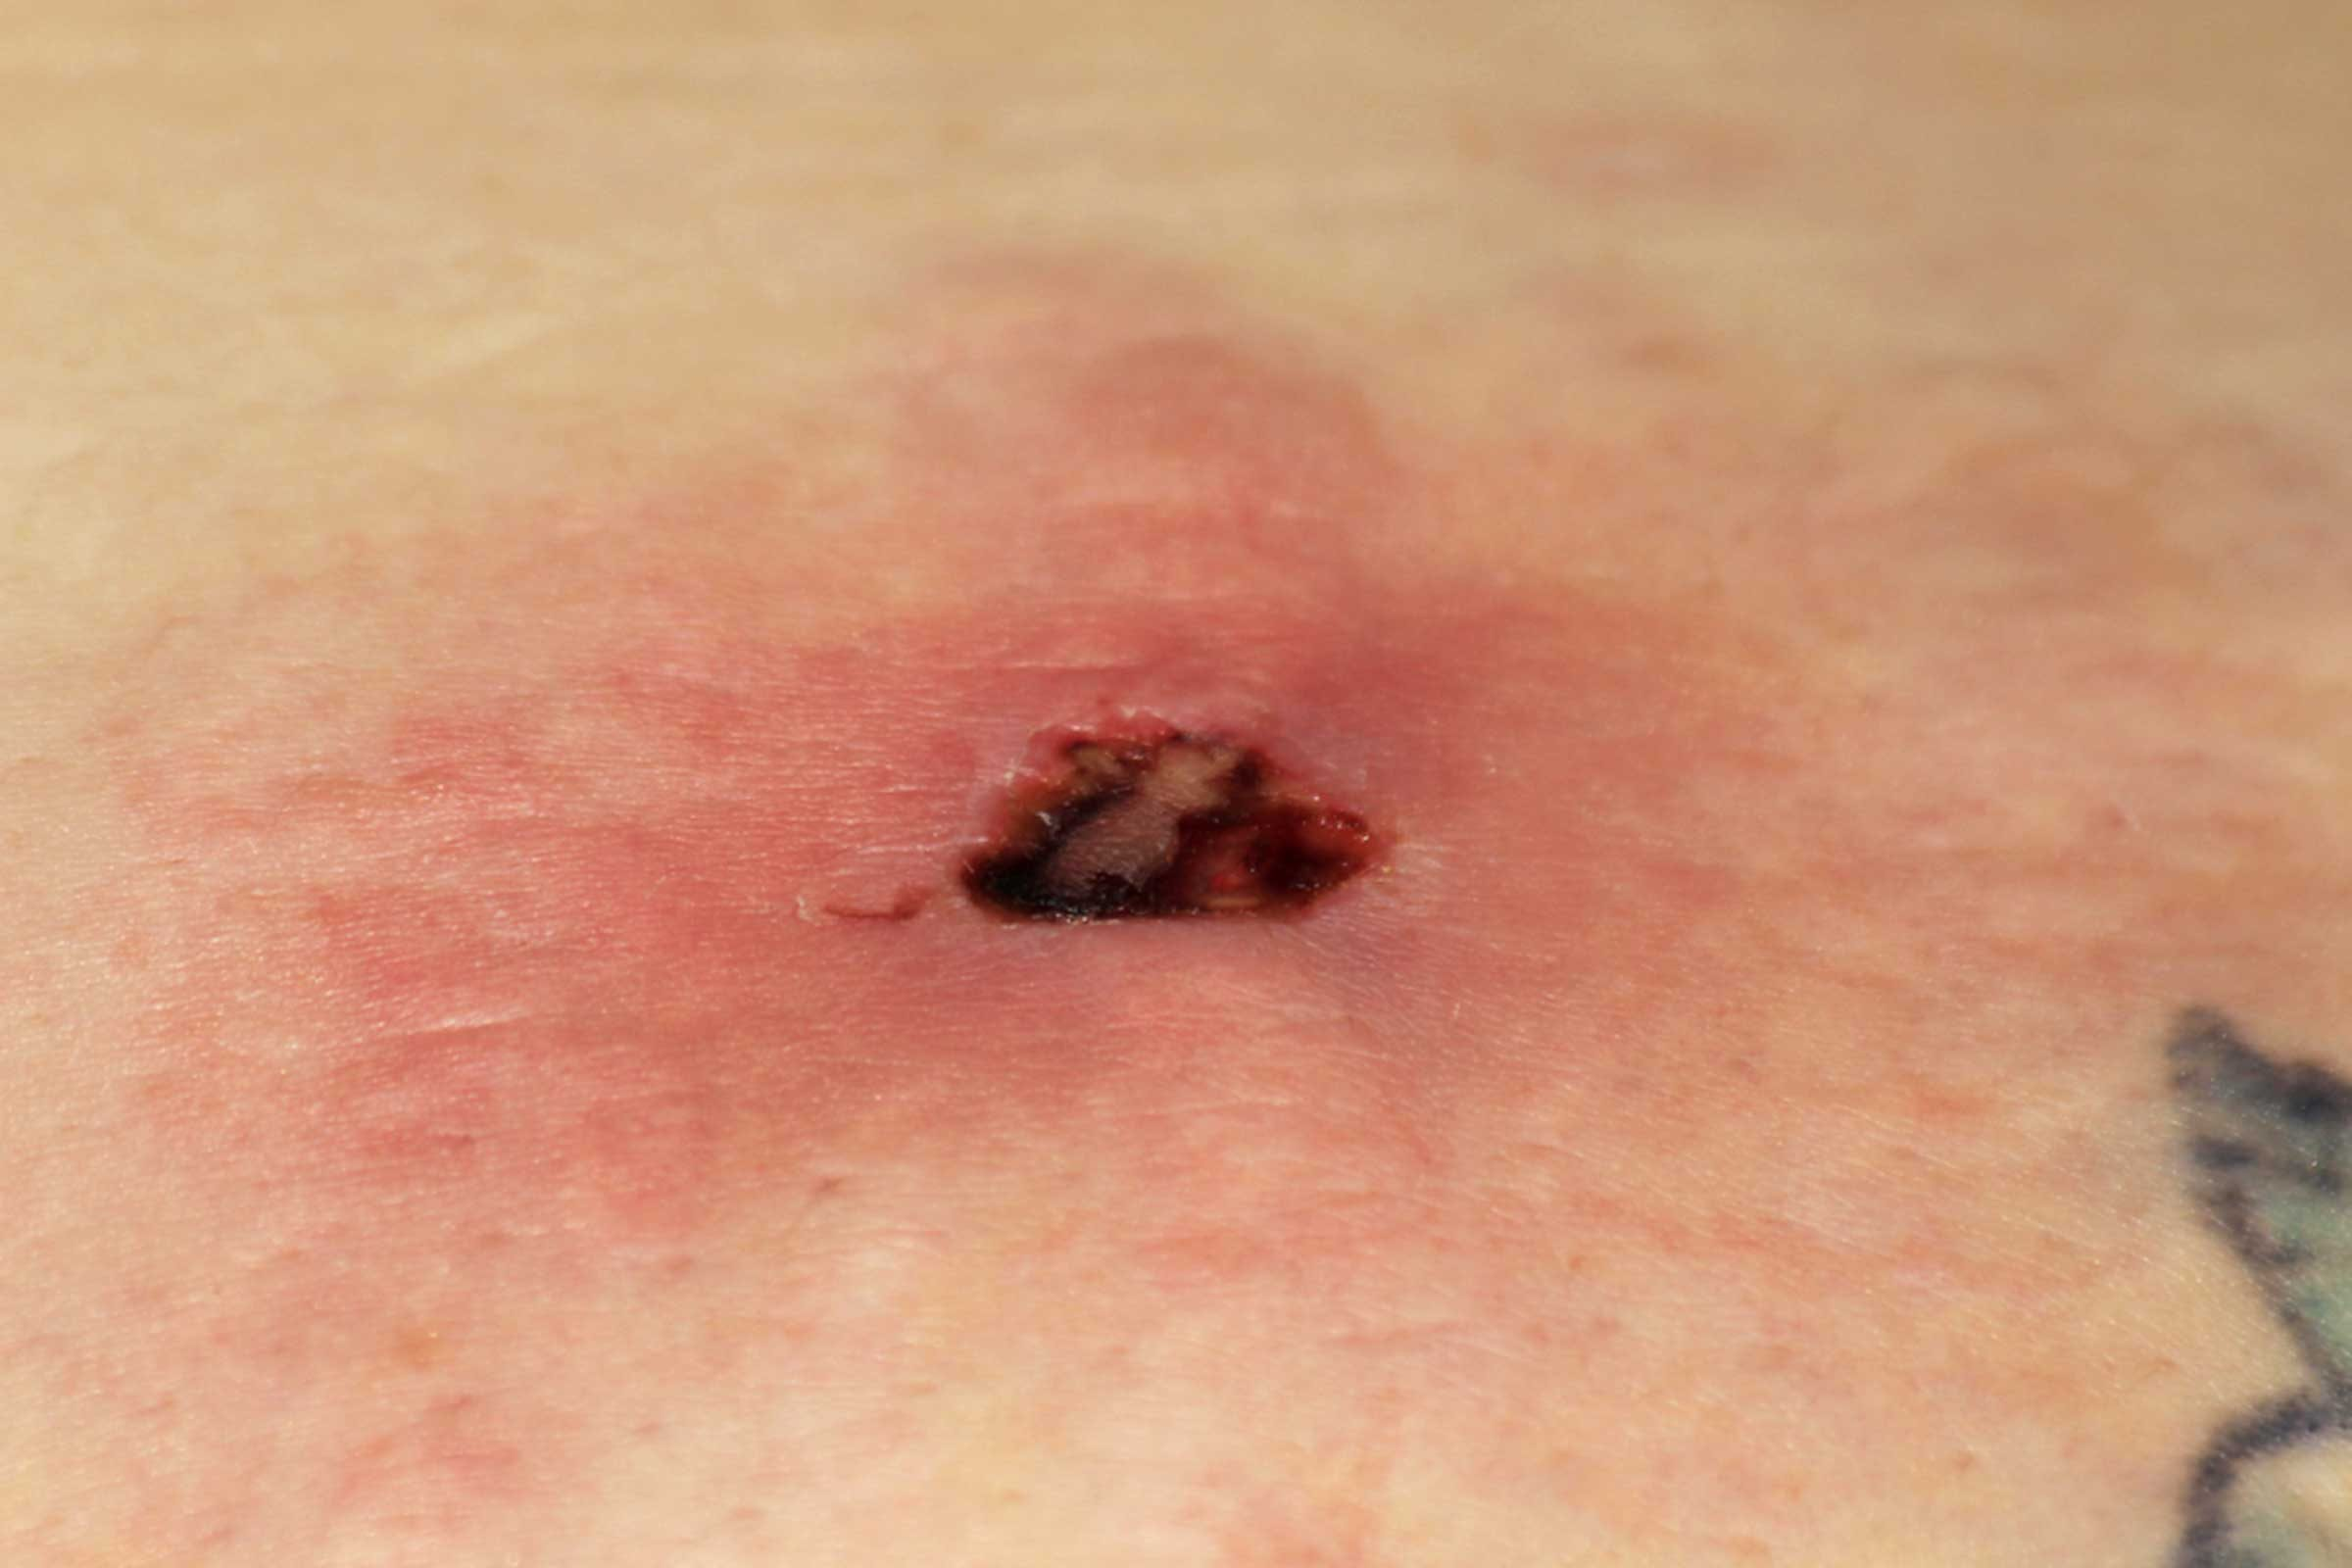 brown recluse spider bite on human skin